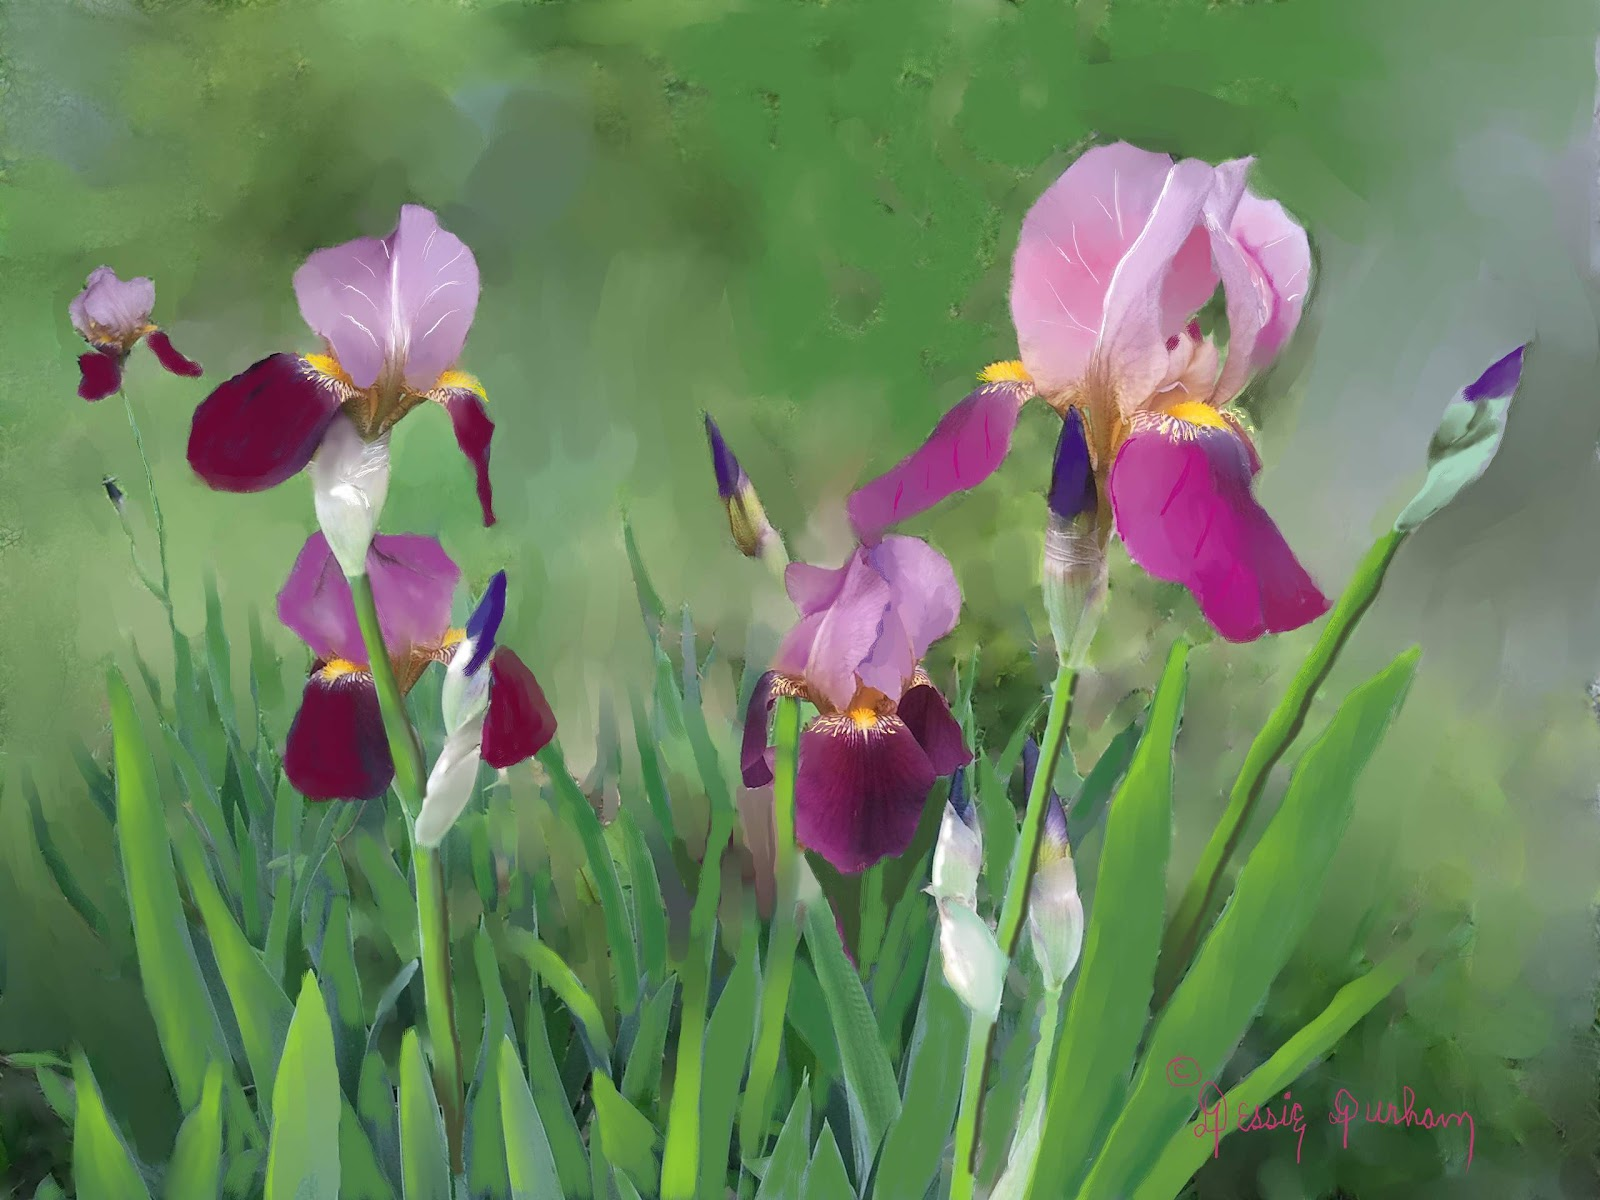 Dessie h durham oil and still life art purple iris flowers these purple irises grew in our yard last spring so a painting of these irises graces my living room walls i have never been able to wear purple but i izmirmasajfo